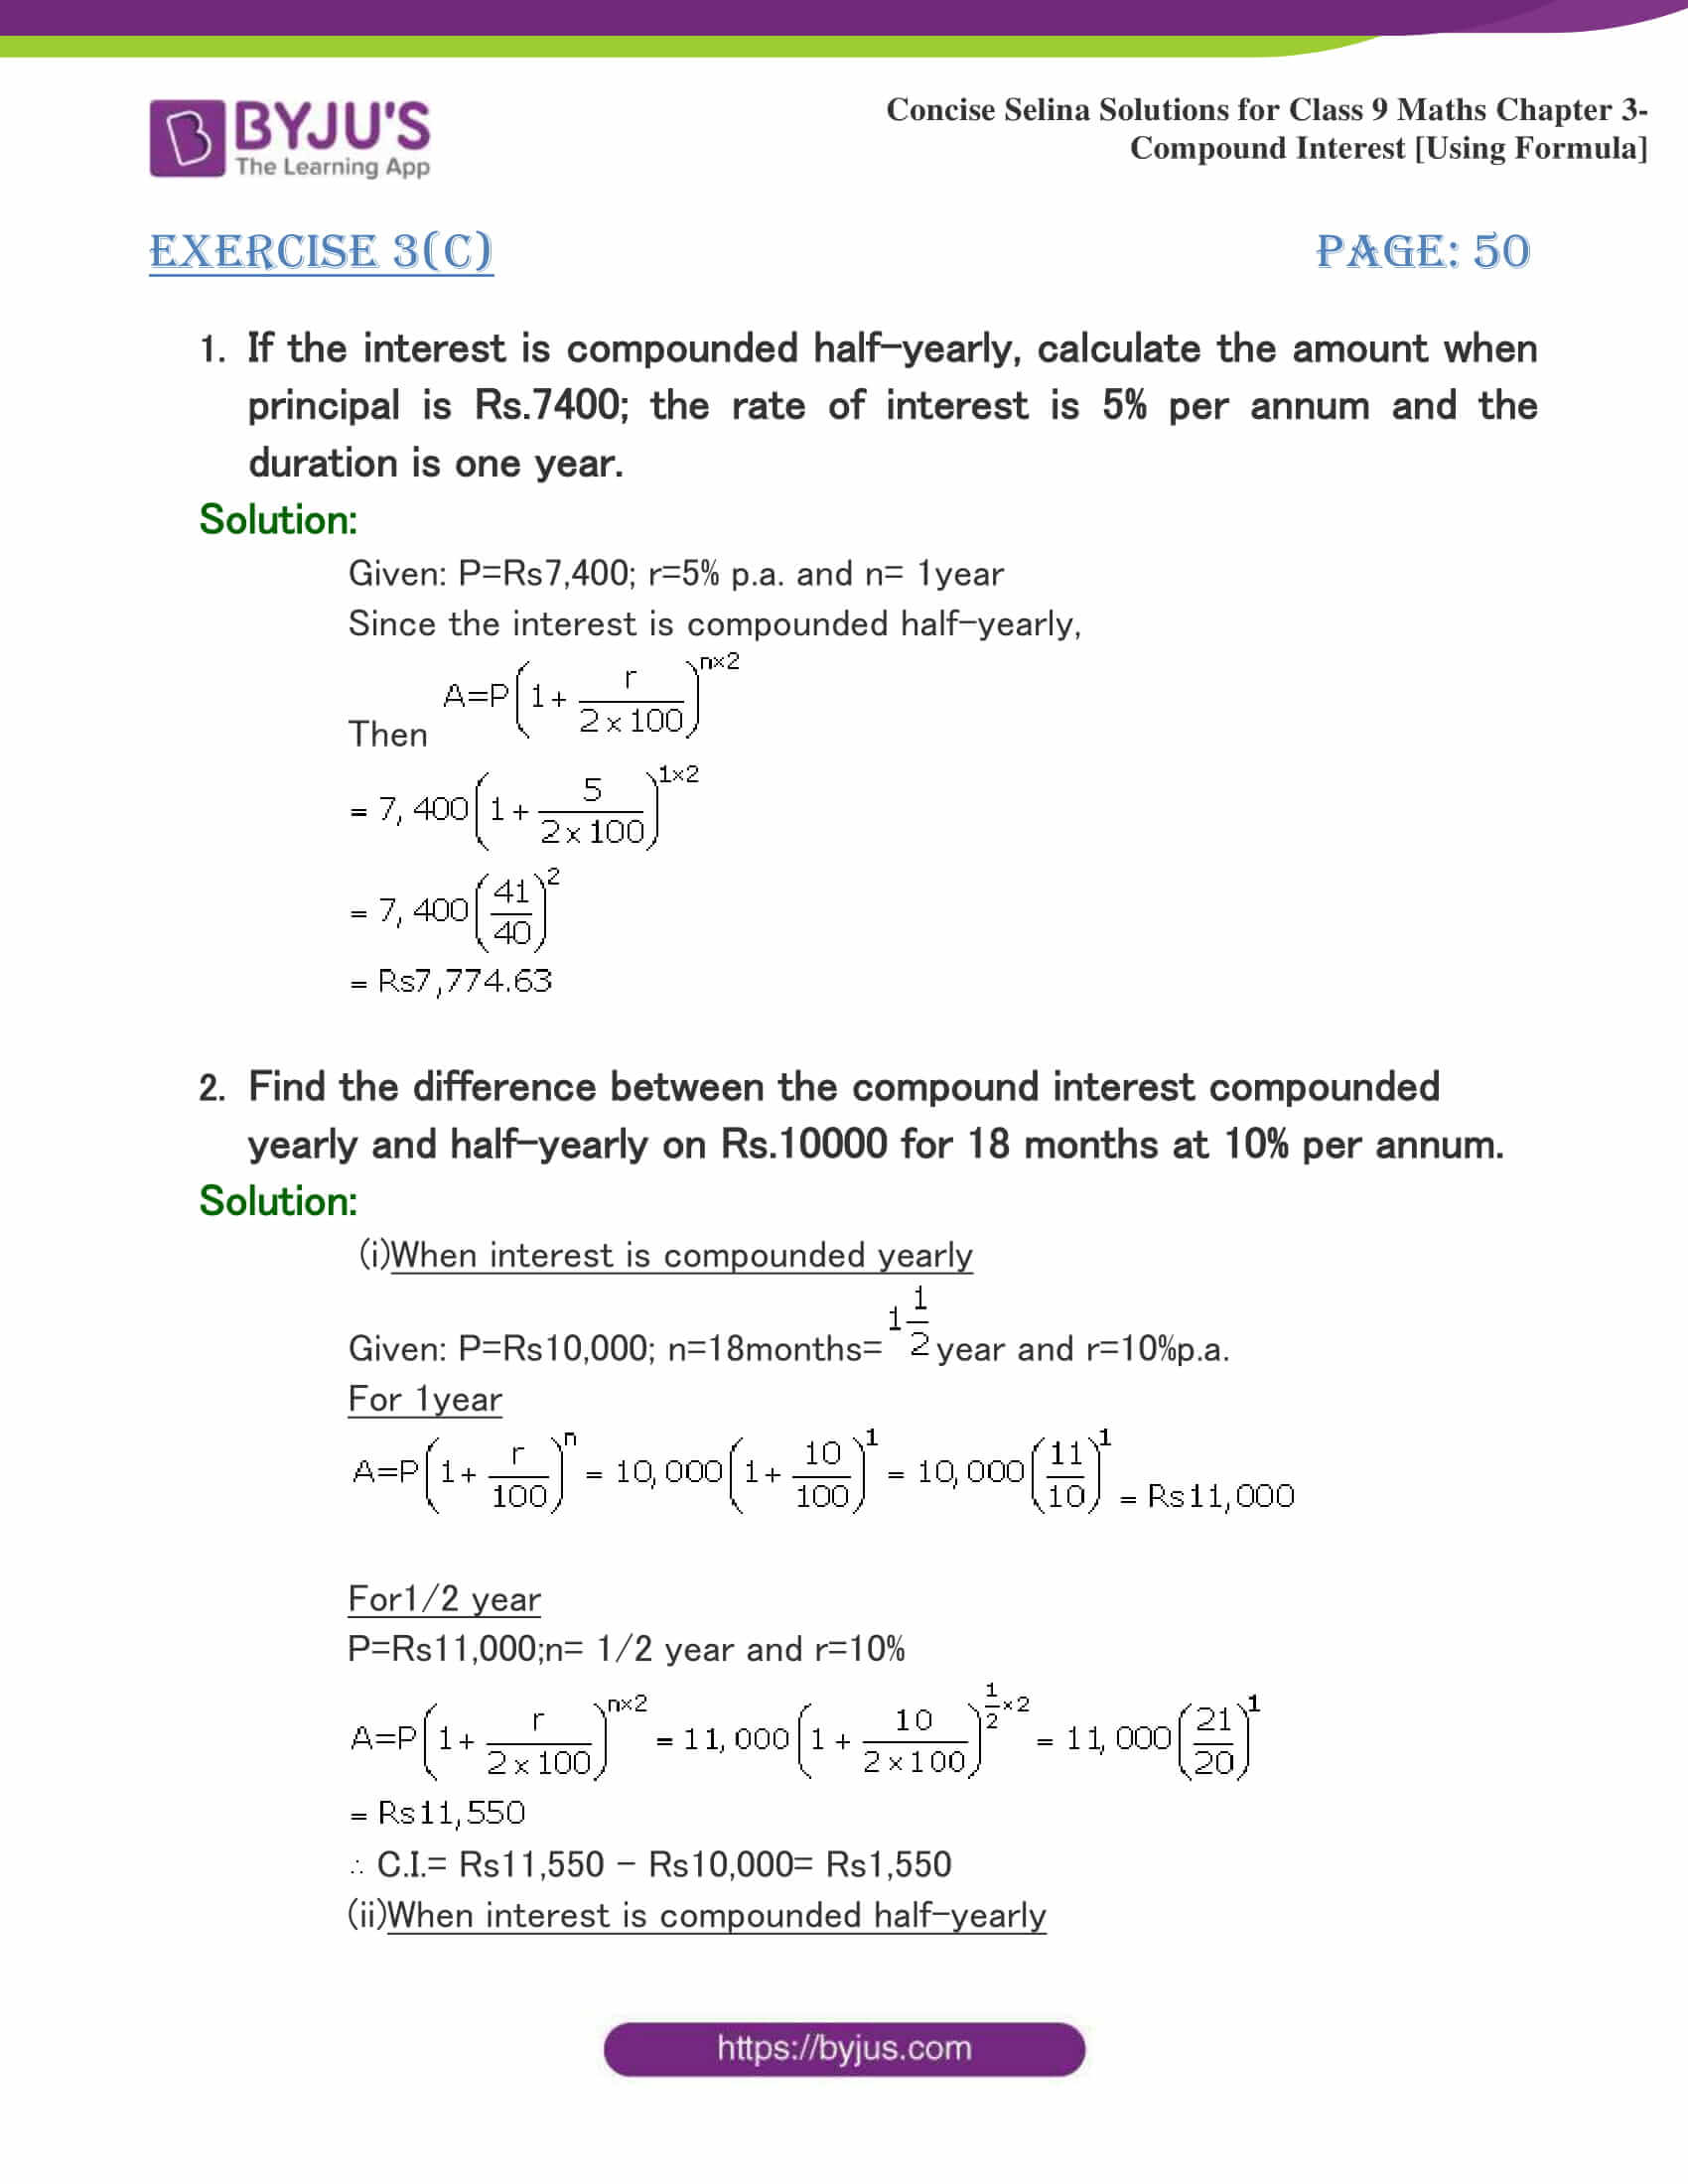 Selina Solutions Class 9 Maths Chapter 3 Compound Interest Using Formula part 22